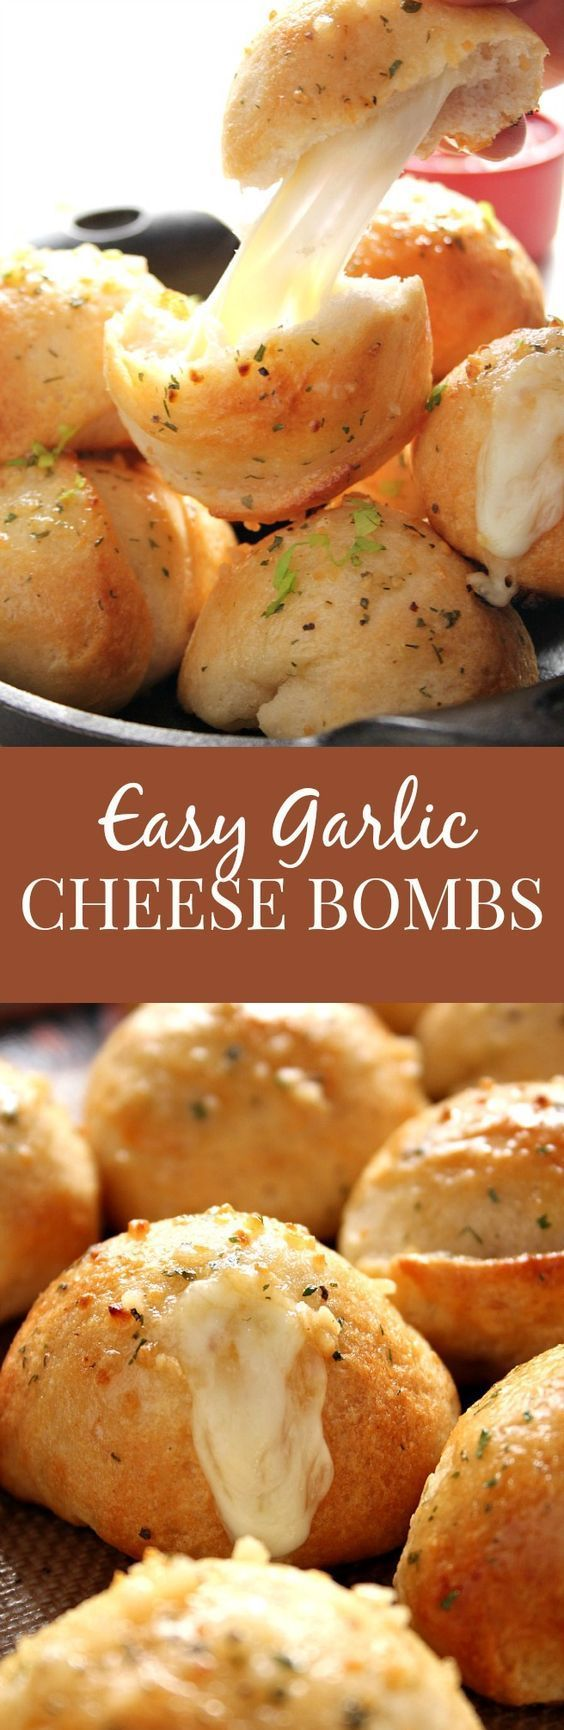 """Easy Garlic Cheese Bombs Recipe via Crunchy Creamy Sweet - biscuit bombs filled with gooey mozzarella, brushed with garlic Ranch butter and baked into perfection. Easy, fast and absolutely addicting!"" The Best Homemade Biscuits Recipes - Quick, Easy and Delicious Bread Sides for Breakfast, Brunch, Lunch and Family Dinner!"